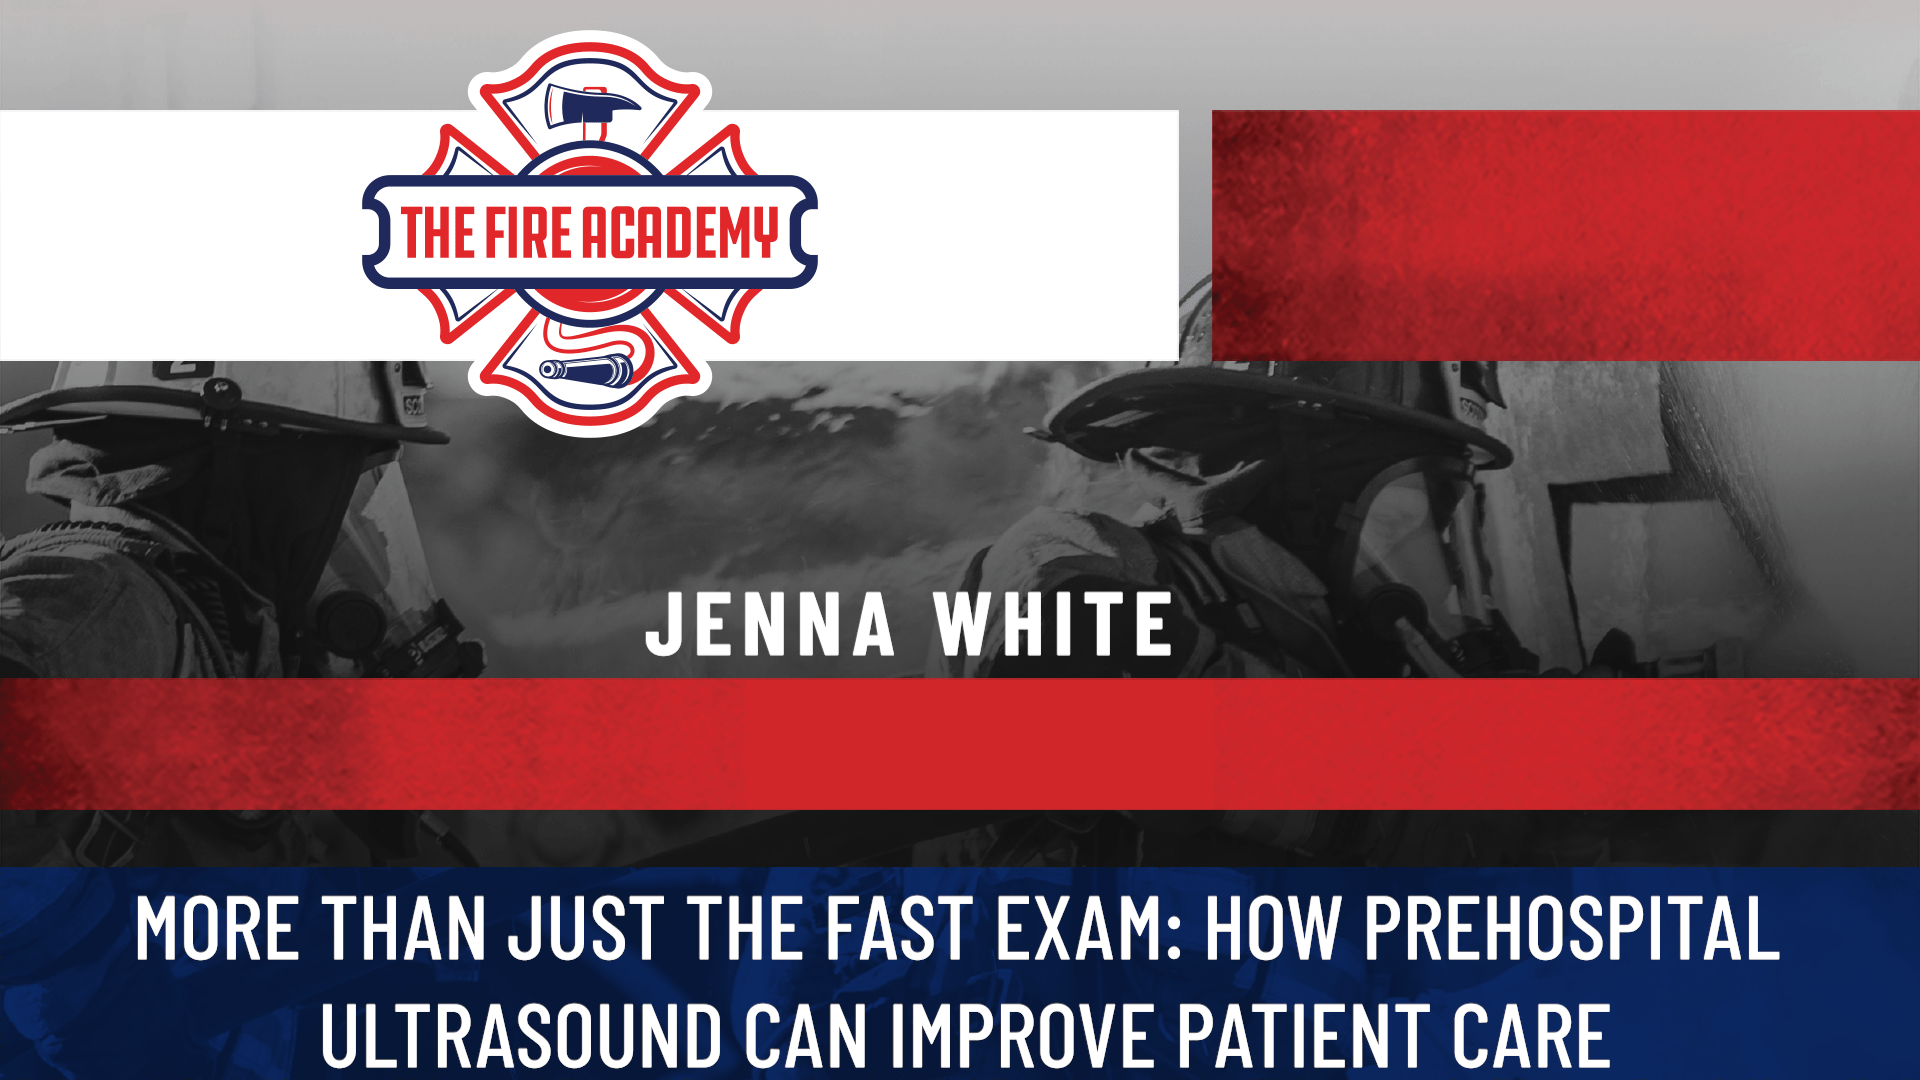 More than Just the FAST Exam: How Prehospital Ultrasound Can Improve Patient Care